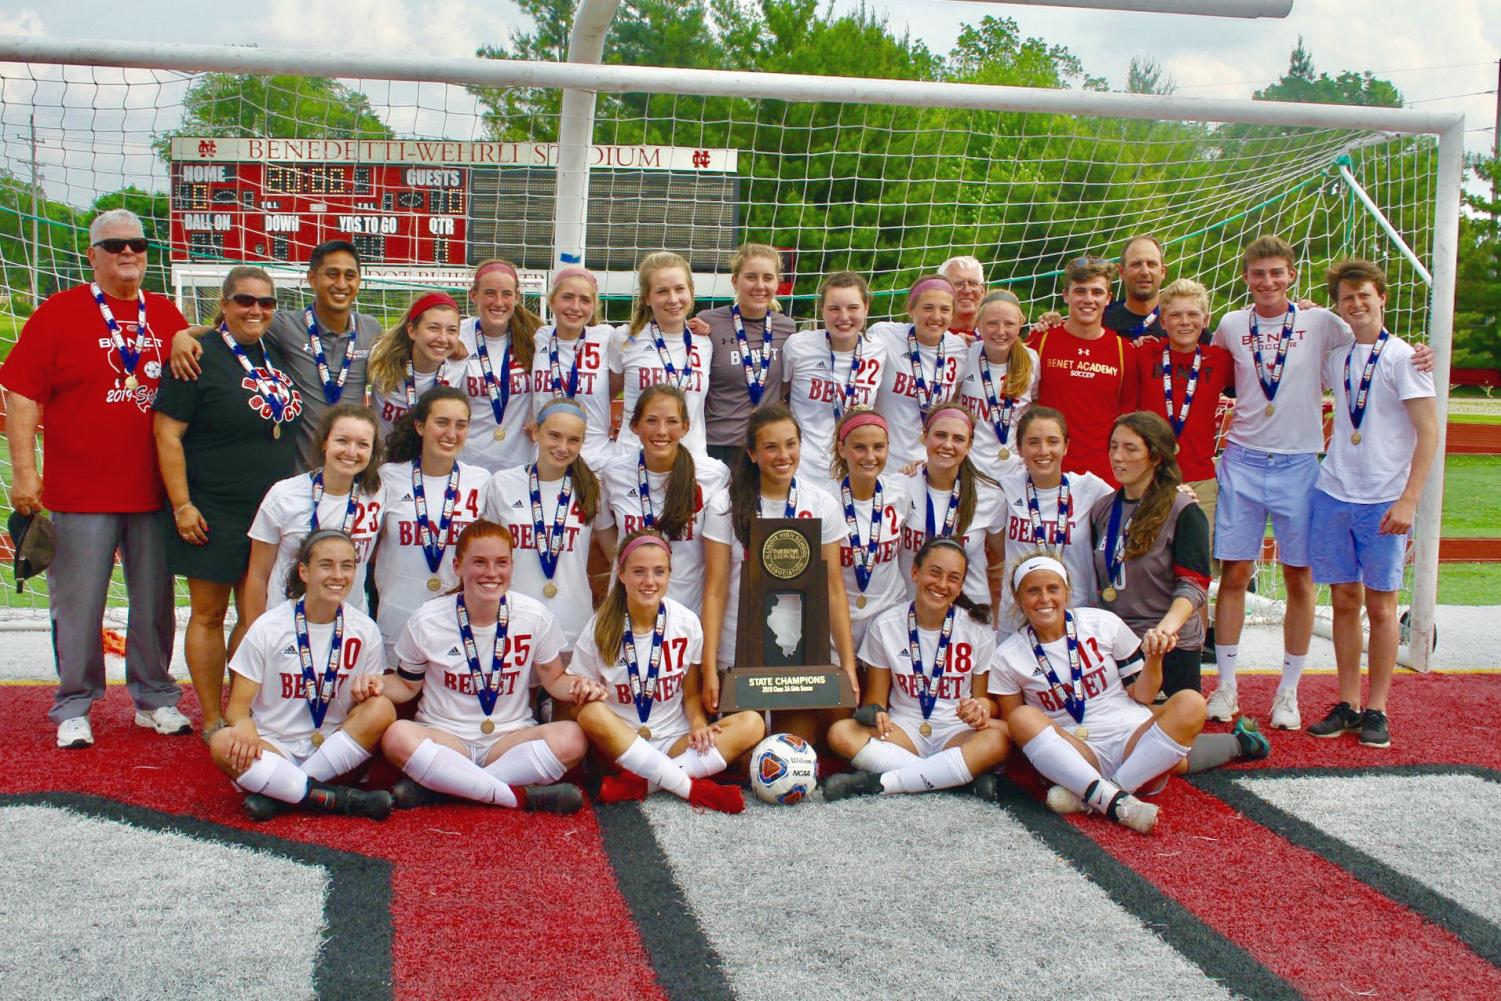 State Champions! First Row (l to r): Kate Flynn, Mary Kate Wilhelm, Nicole Burns, Cami Picha, Mary Kate Hansen; Middle Row: Mia Tommasone, Mia Ullmer, Jaimee Cibulka, Dani Pullen, Brooke Pullen, Gracie Chalkey, Sarah Bozych, Mae Tully, Eva Frantzen; Back Row: Assistant Coach Henry Wind, Assistant Coach Kim Sayers, Head Coach Gerard Oconer, Kayla Brannigan, Abby Casmere, Paige Neri, Karina Krammer, Ava Rogers, Maggie Roche, Emily Mikitka, Assistant Coach Bob Gros, Katie Lewellyan, Manager Chandler Hart, Assistant Coach Martin Uscila, Manager Patrick Michalik, Manager Jason Byrne, Manager CJ Warren